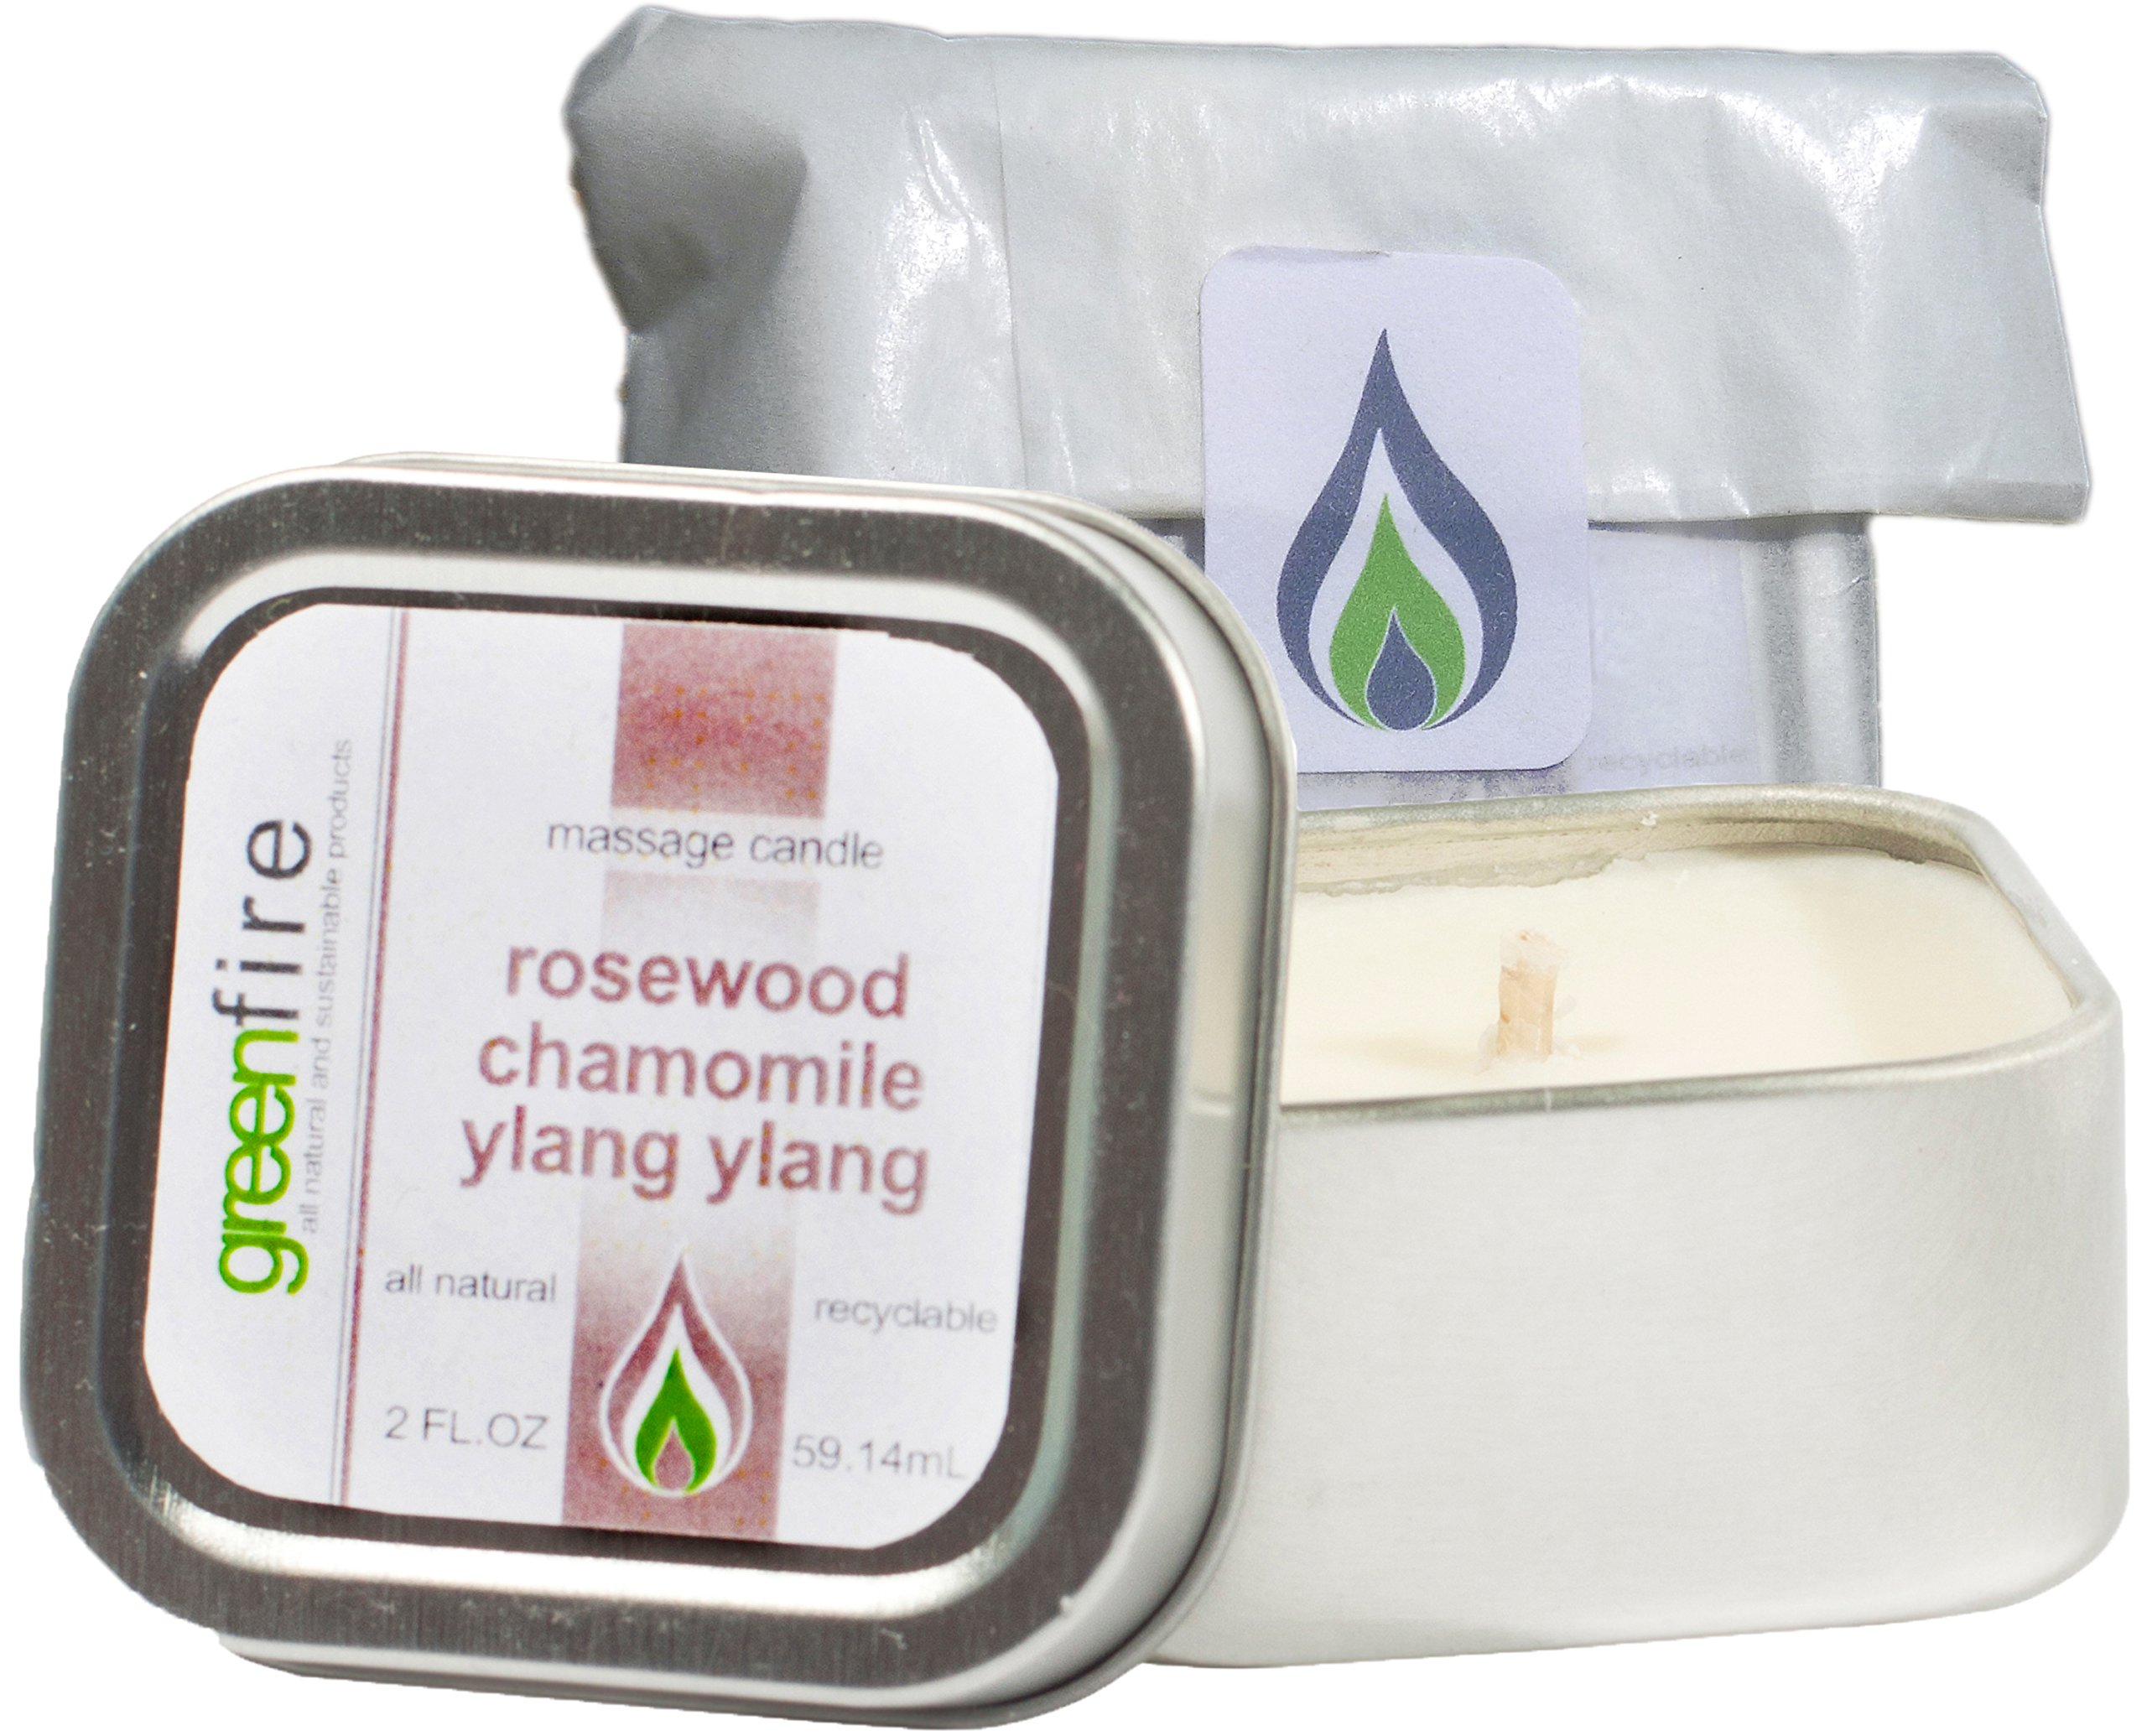 Greenfire All Natural Massage Oil Candle, Rosewood Chamomile Ylang Ylang, Travel Size 2 Fluid Ounce by Greenfire Massage Candles (Image #1)